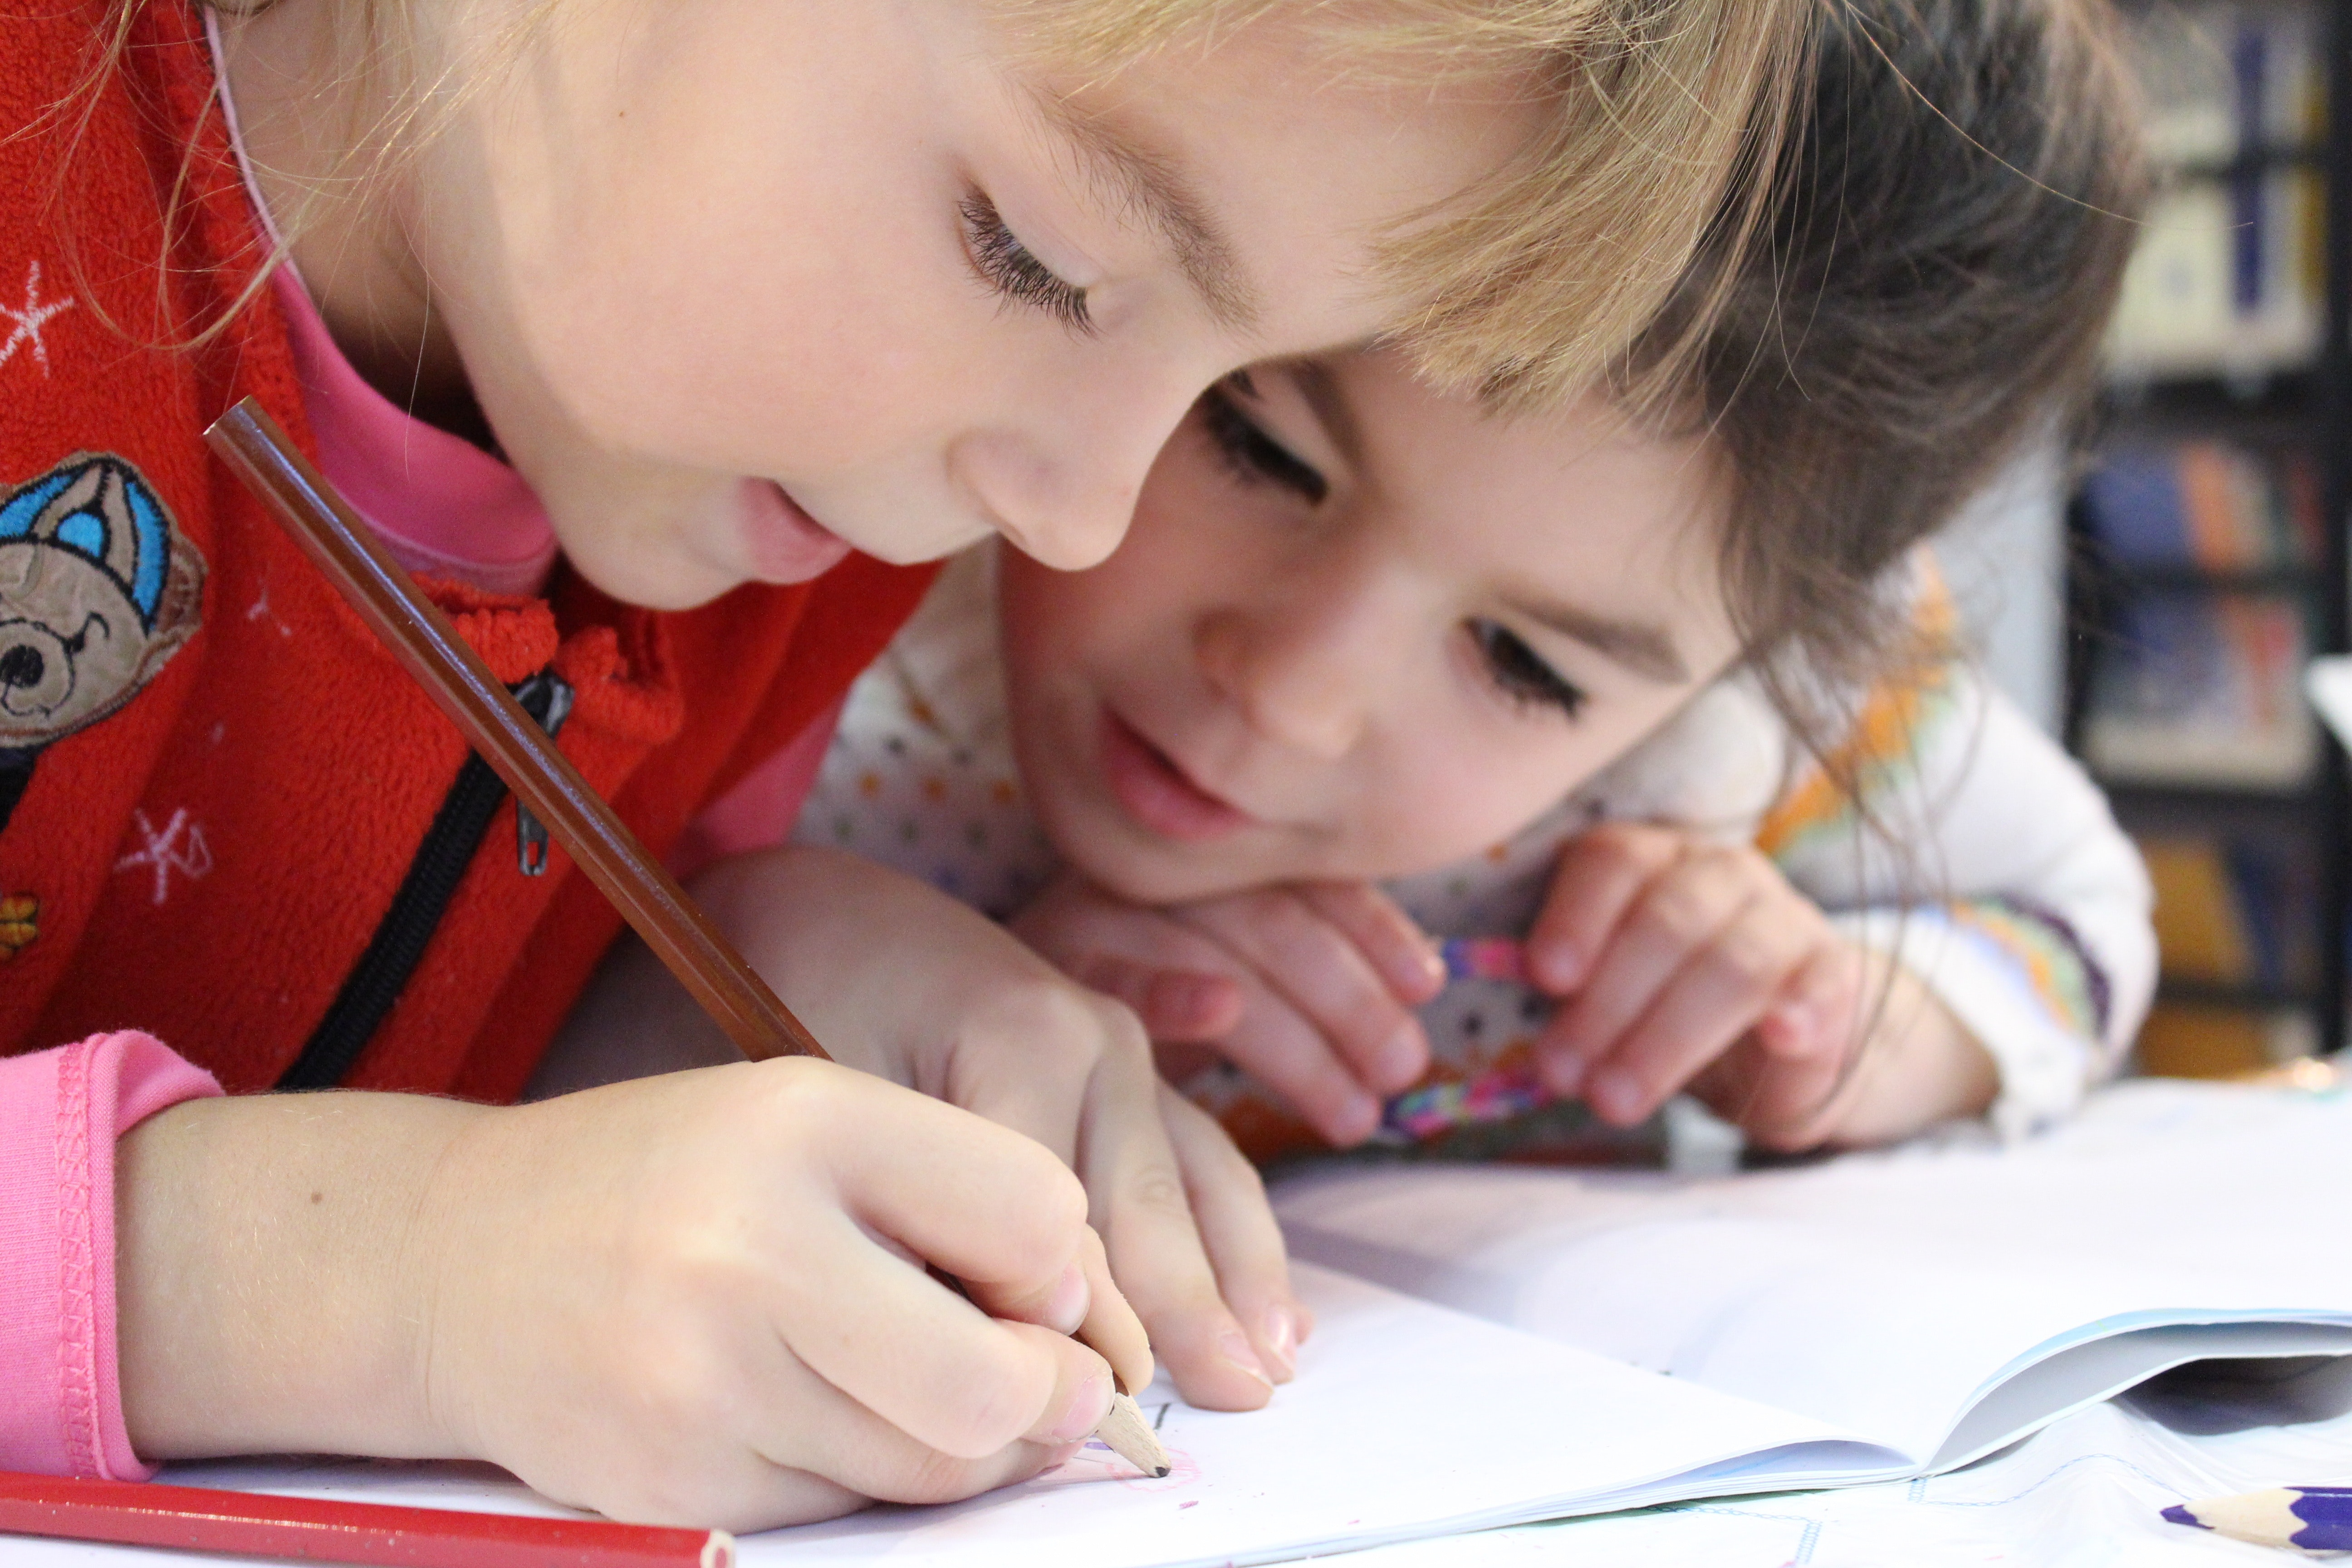 Two girls coloring in a notebook